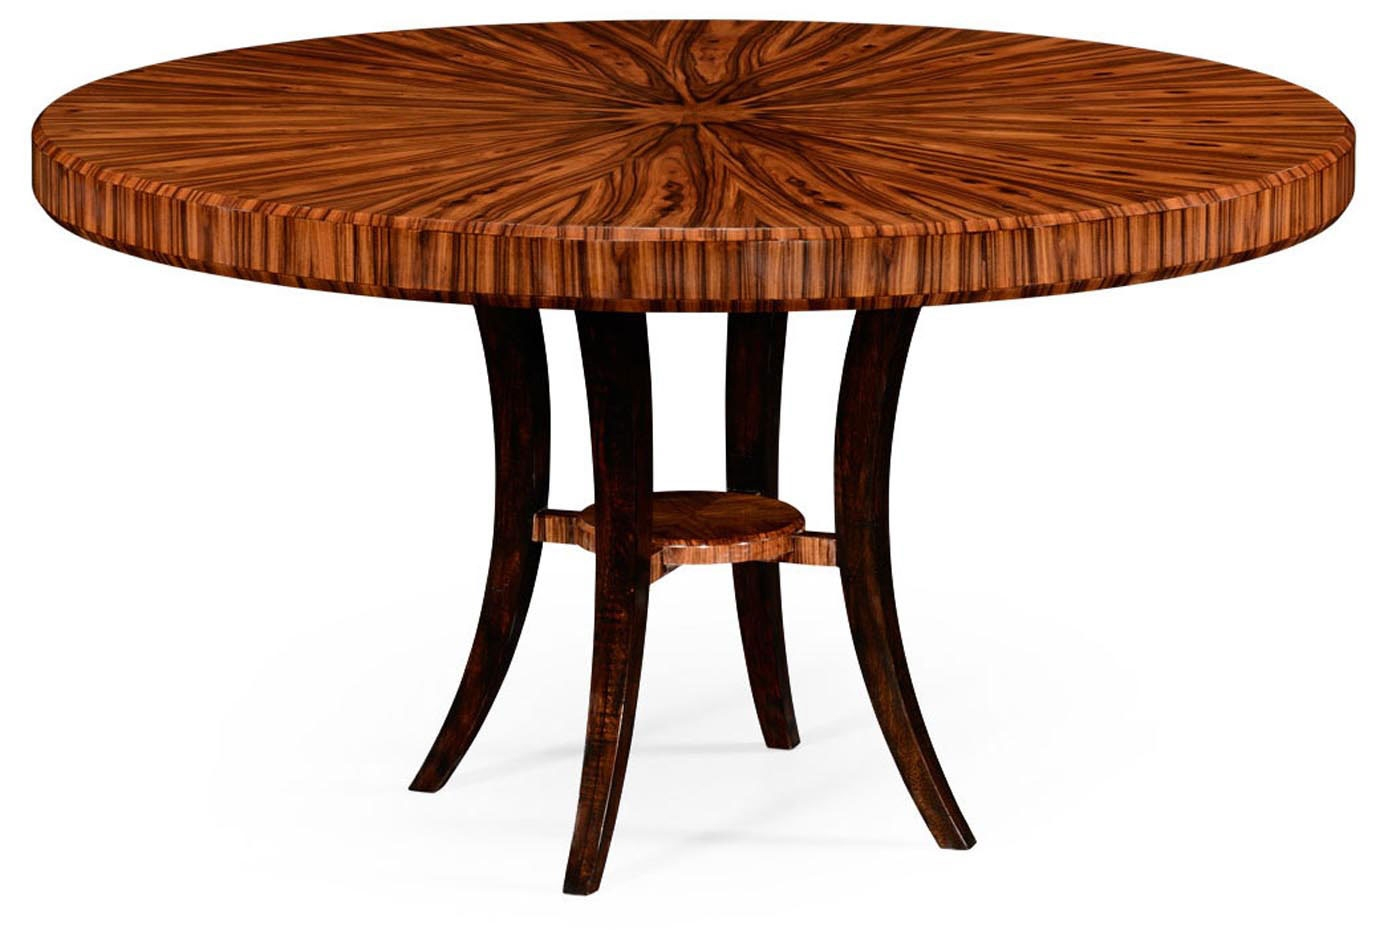 Round Dining Table with Santos Rosewood Table : RoundDiningTablewithSantosRosewoodTablep from bernadettelivingston.com size 1392 x 930 jpeg 306kB